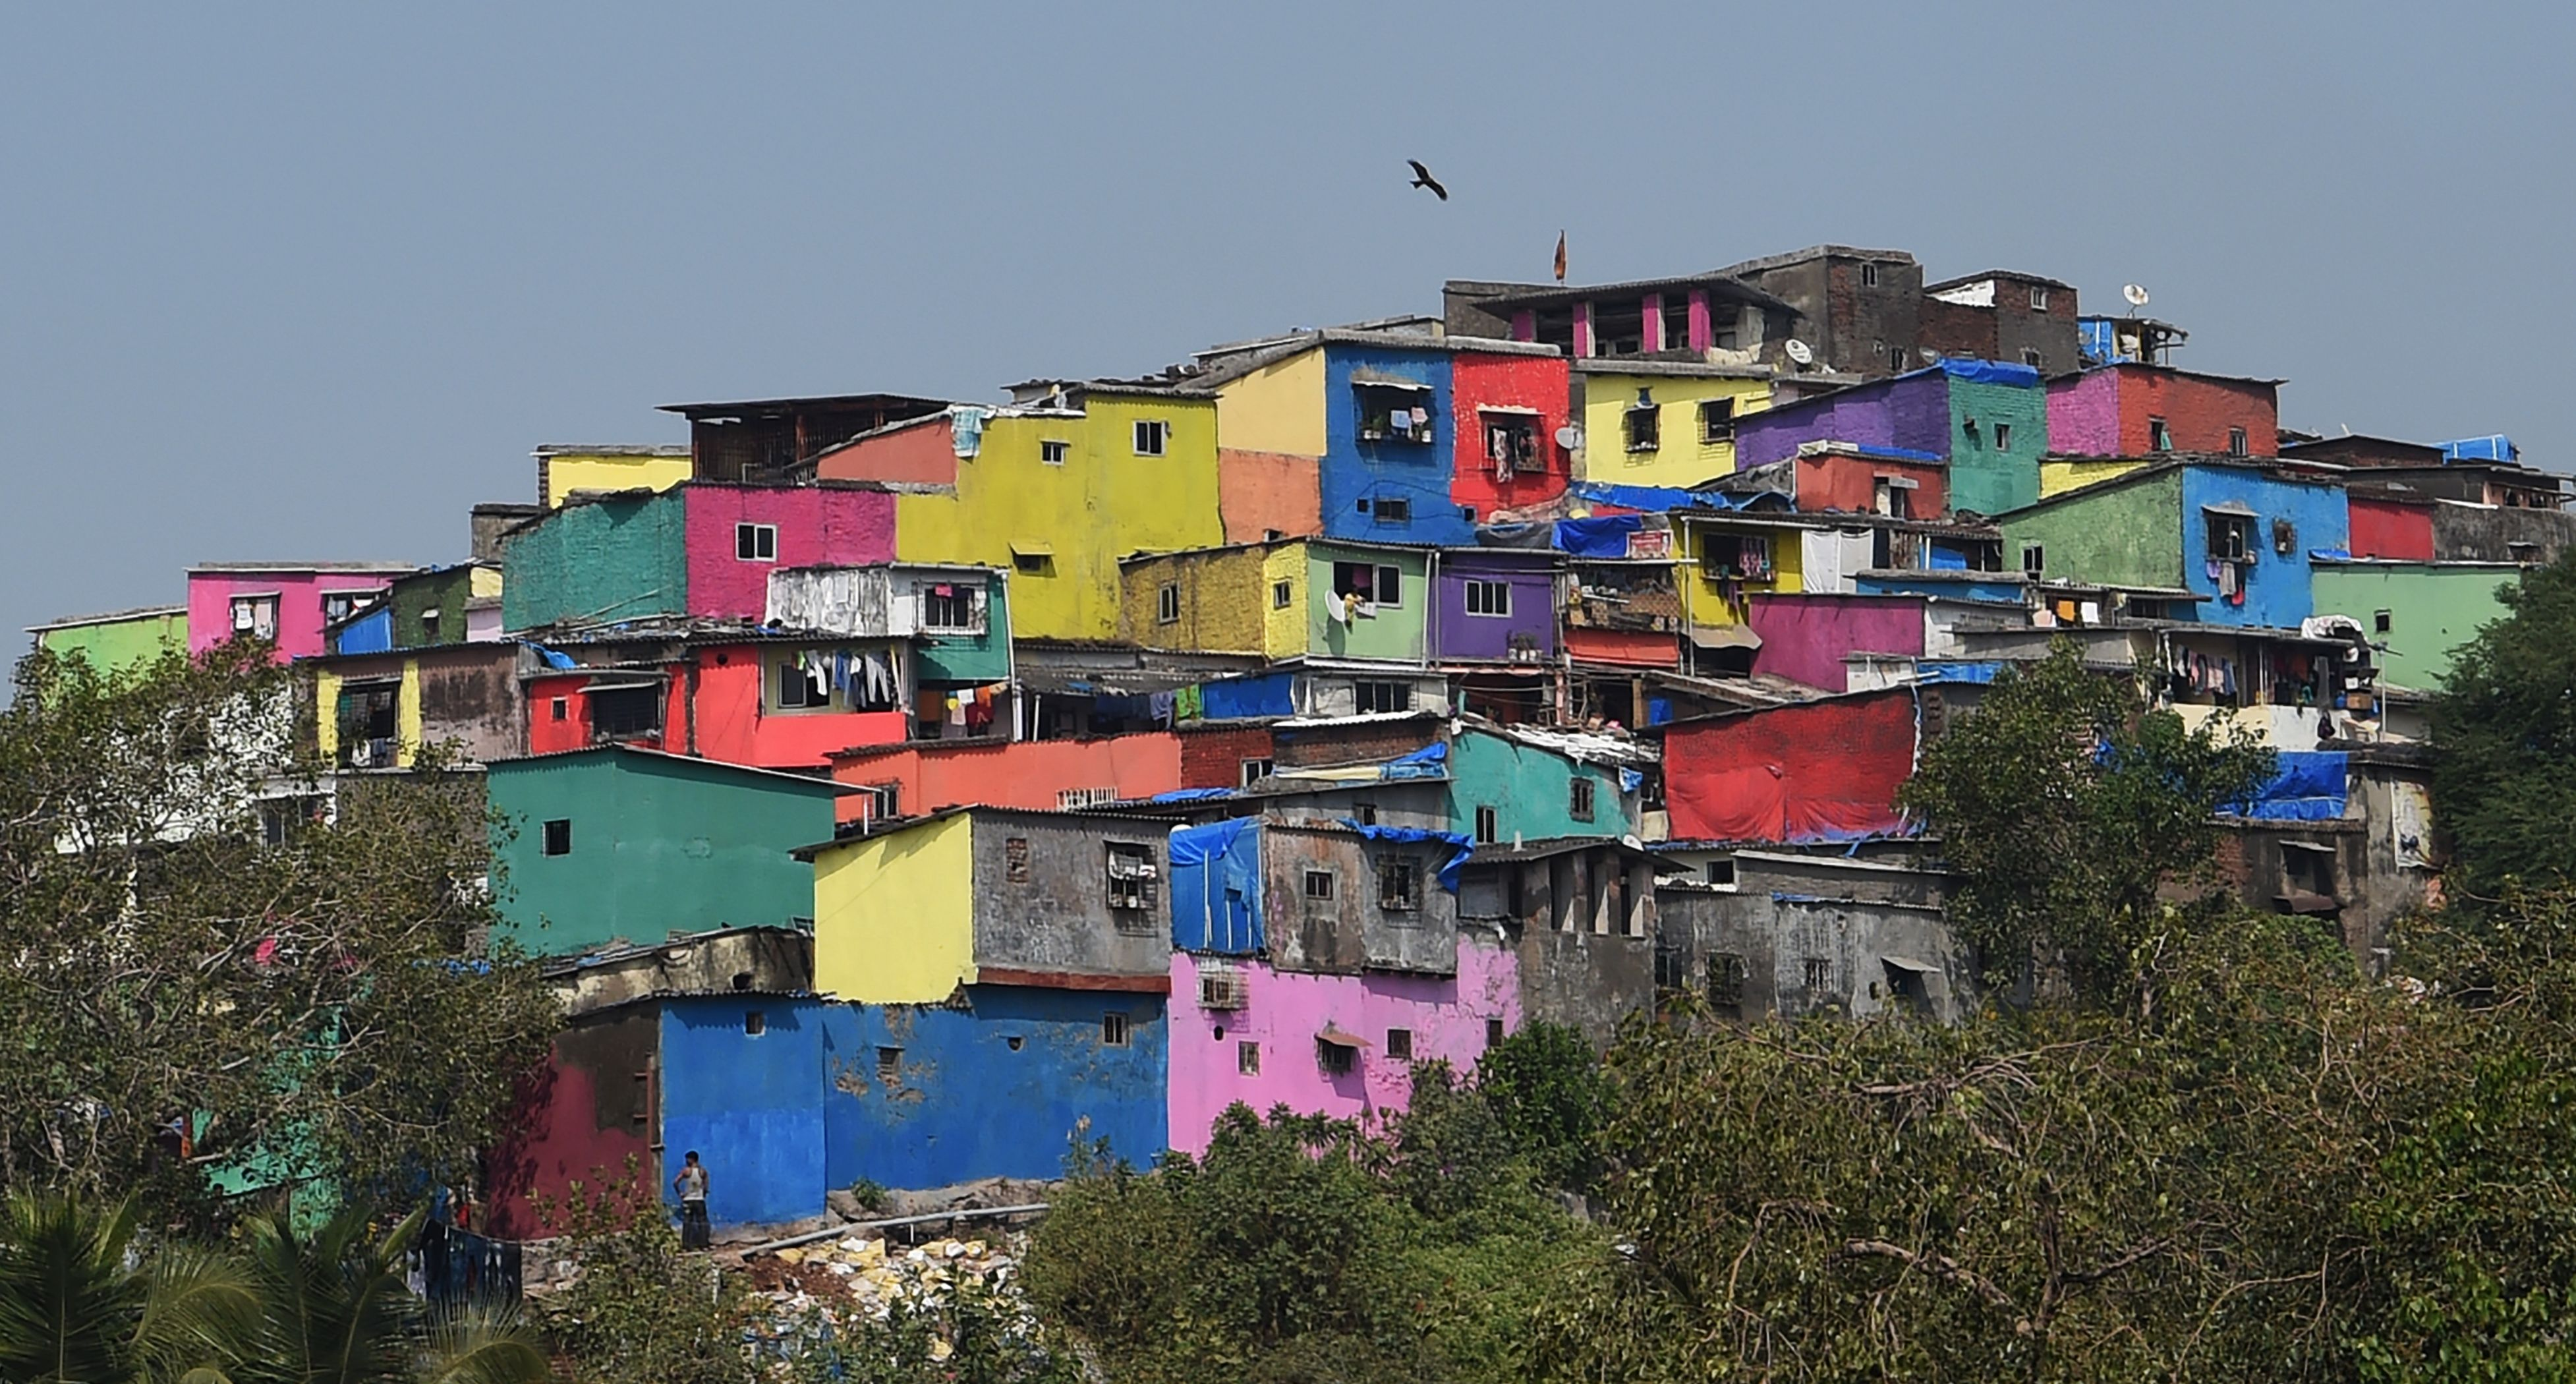 The Slum Rehabilitation Authority (SRA) floated global tenders for the nearly Rs 20,000-crore Dharavi Redevelopment Project